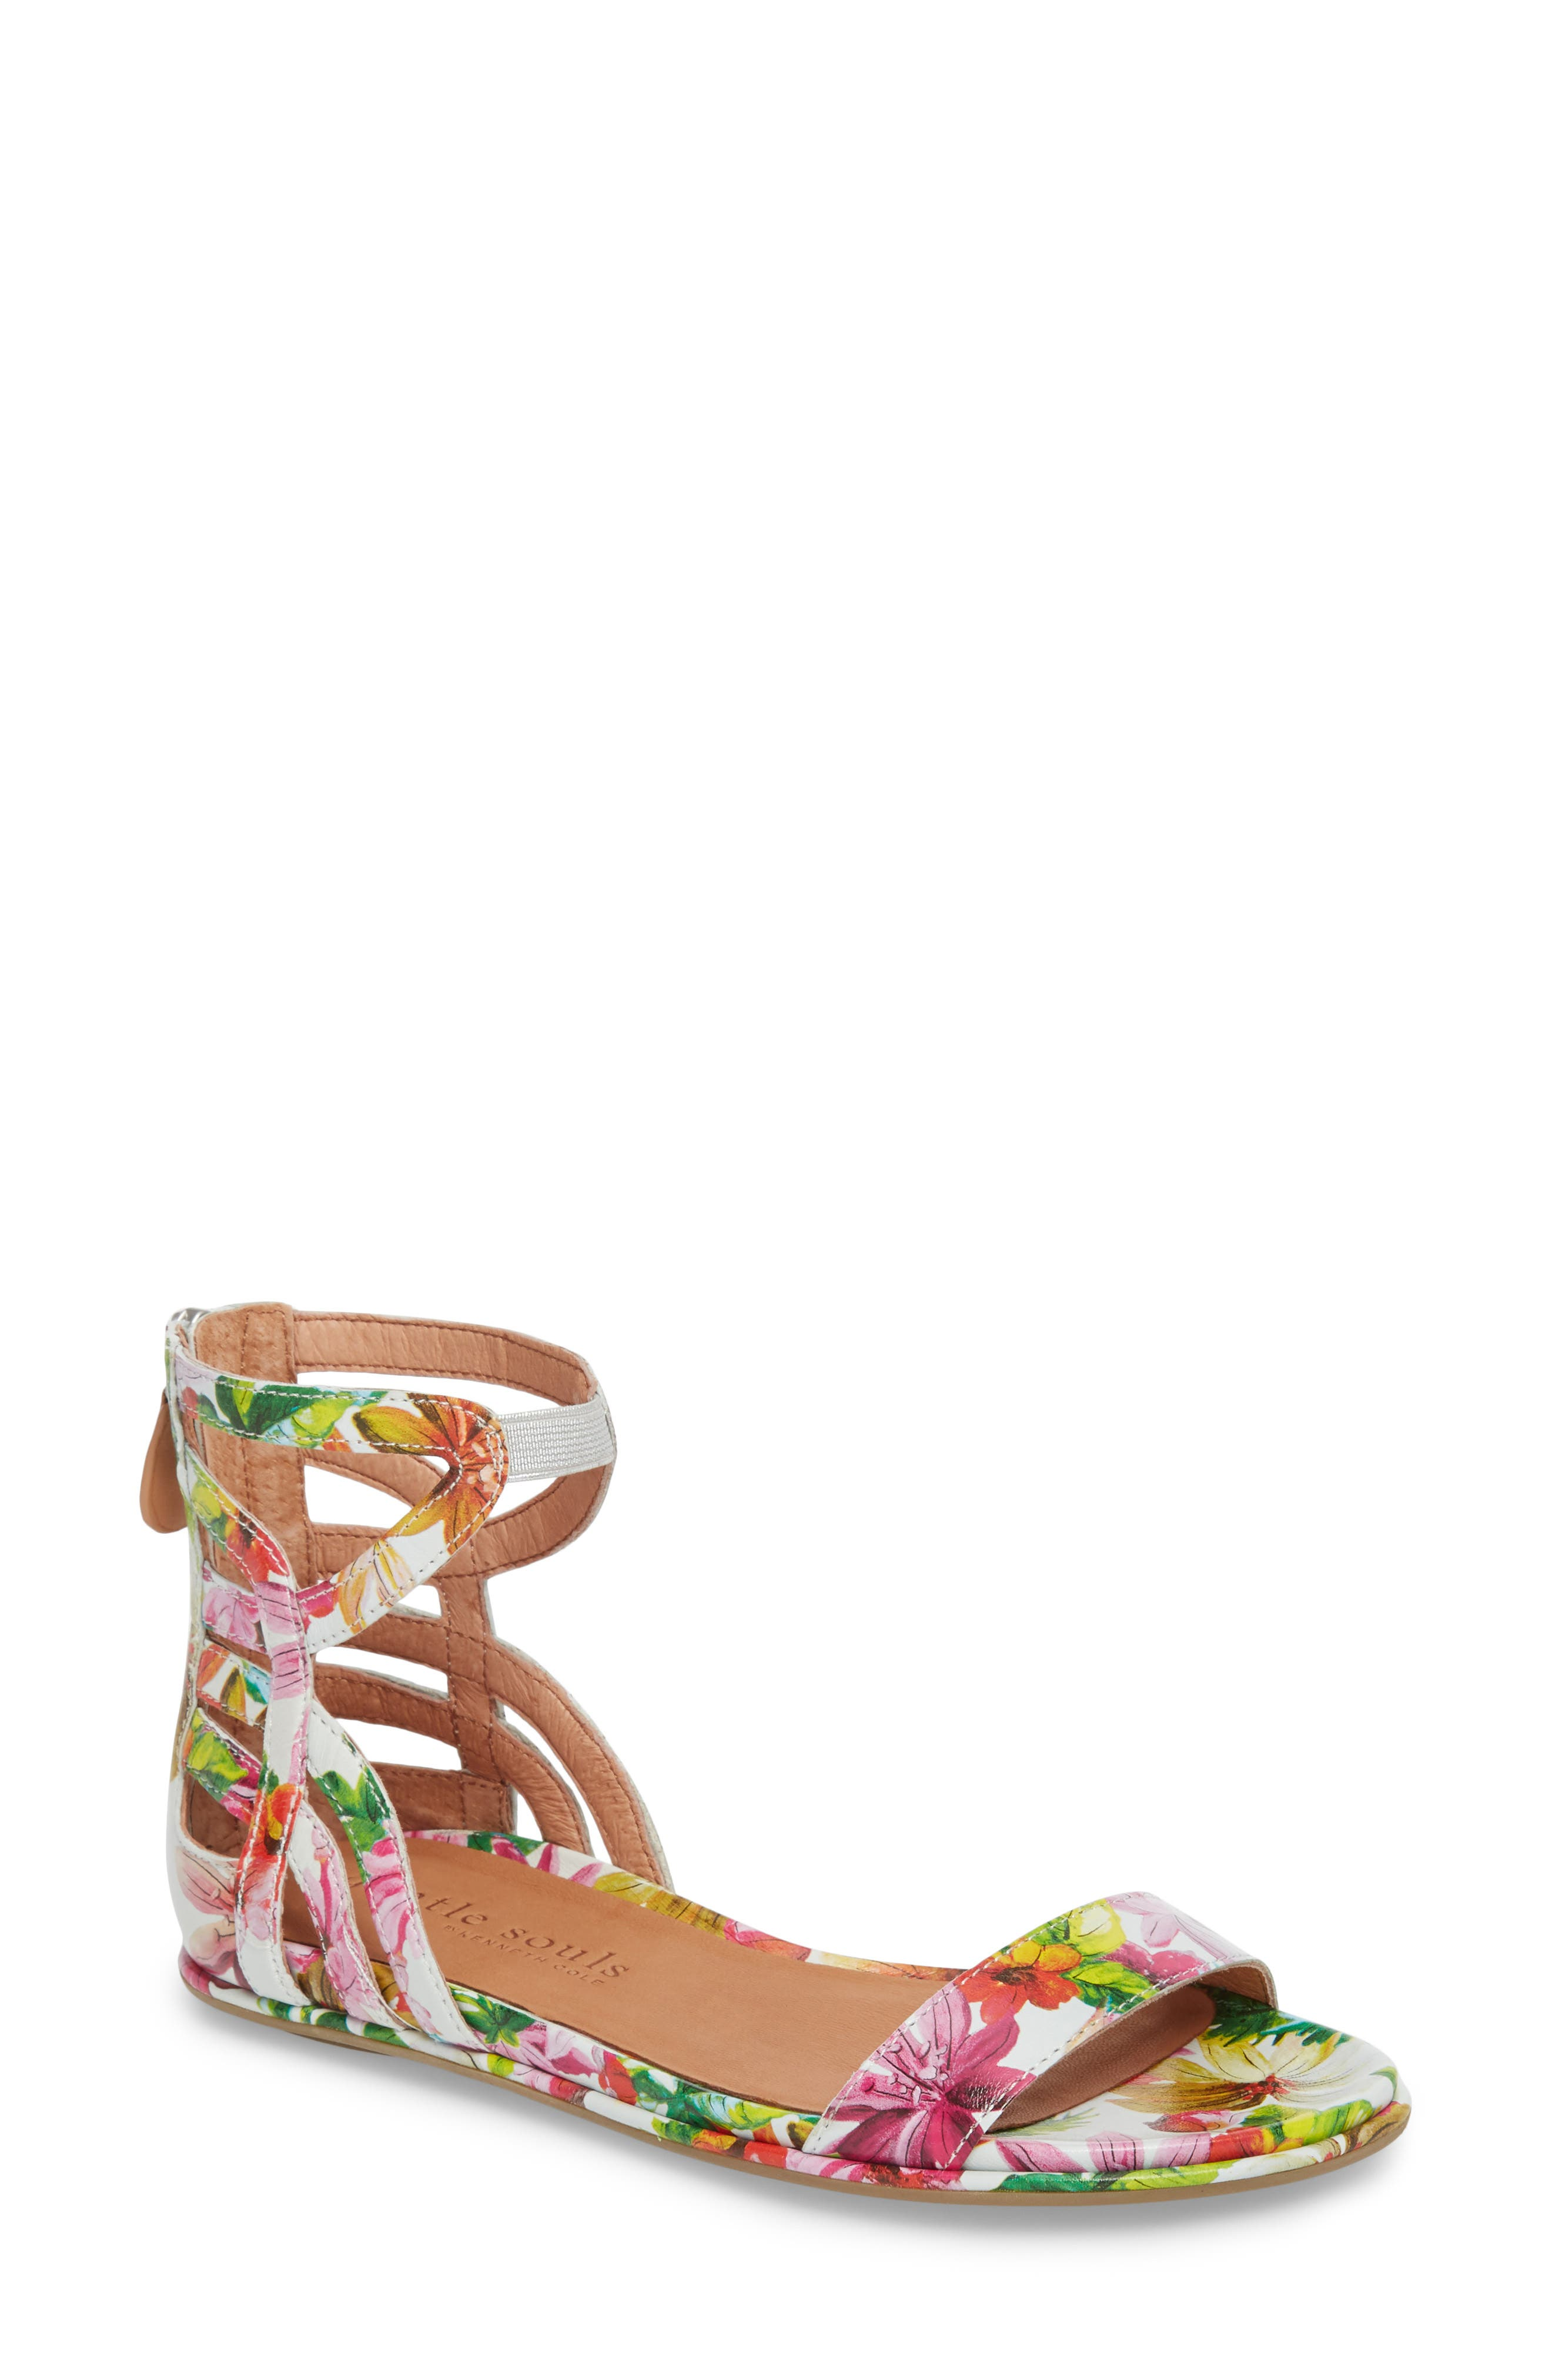 GENTLE SOULS BY KENNETH COLE, Larissa Sandal, Main thumbnail 1, color, PALM PRINTED LEATHER